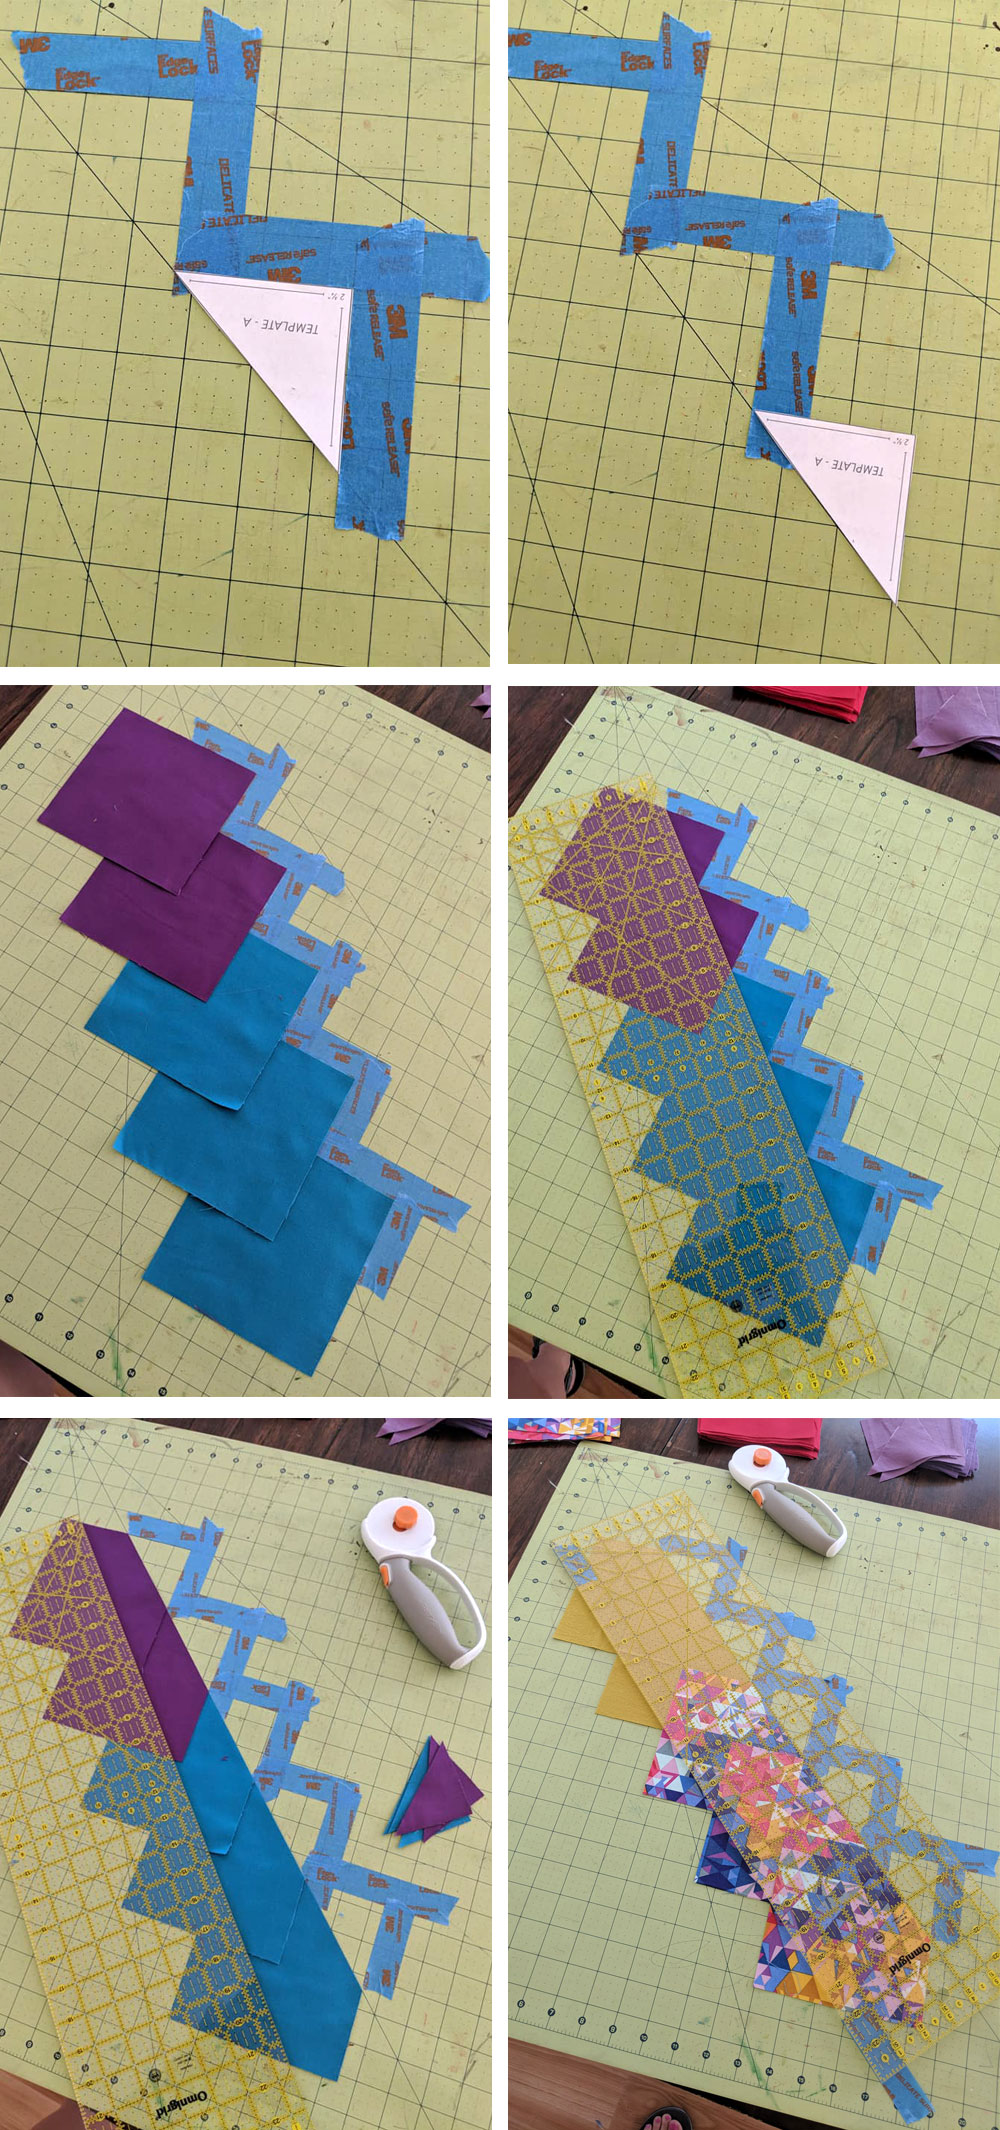 Glitter and Glow quilt pattern cutting hack. | Suzy Quilts https://suzyquilts.com/glitter-glow-quilt-pattern-use-scraps